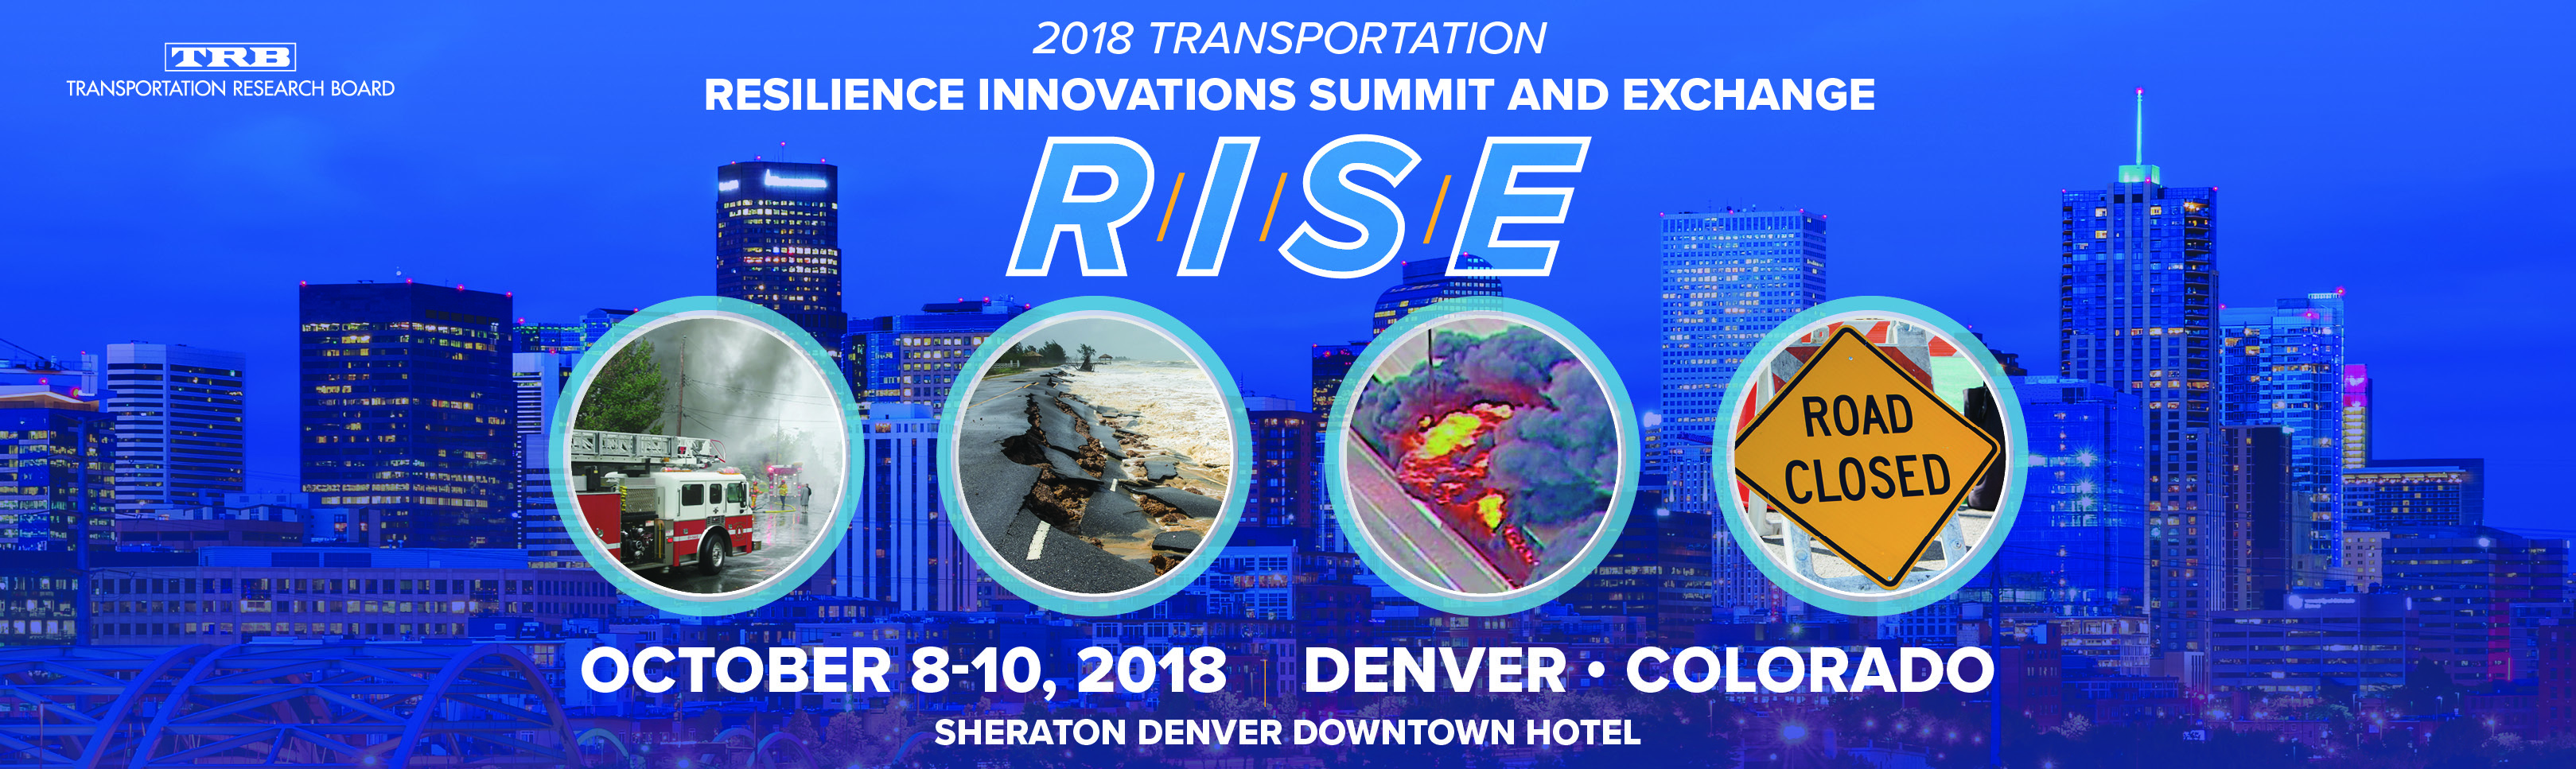 2018 Transportation Resilience Innovations Summit and Exchange